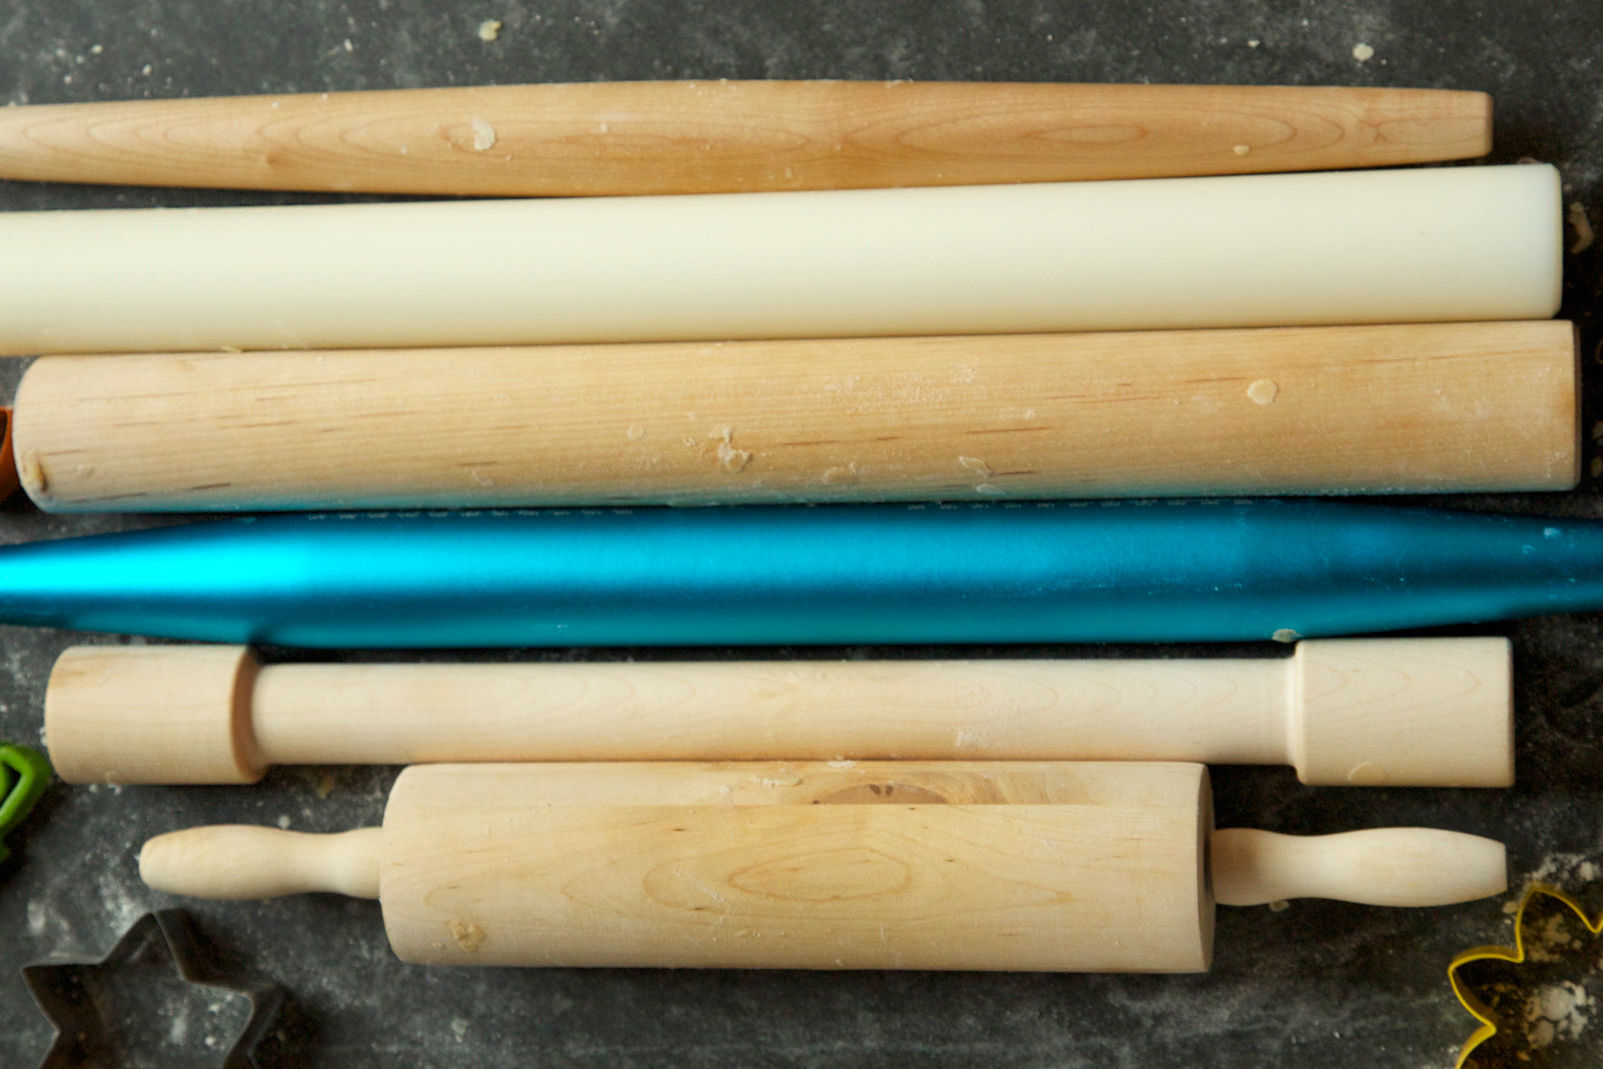 The Best Rolling Pin for All of Your Fall Baking